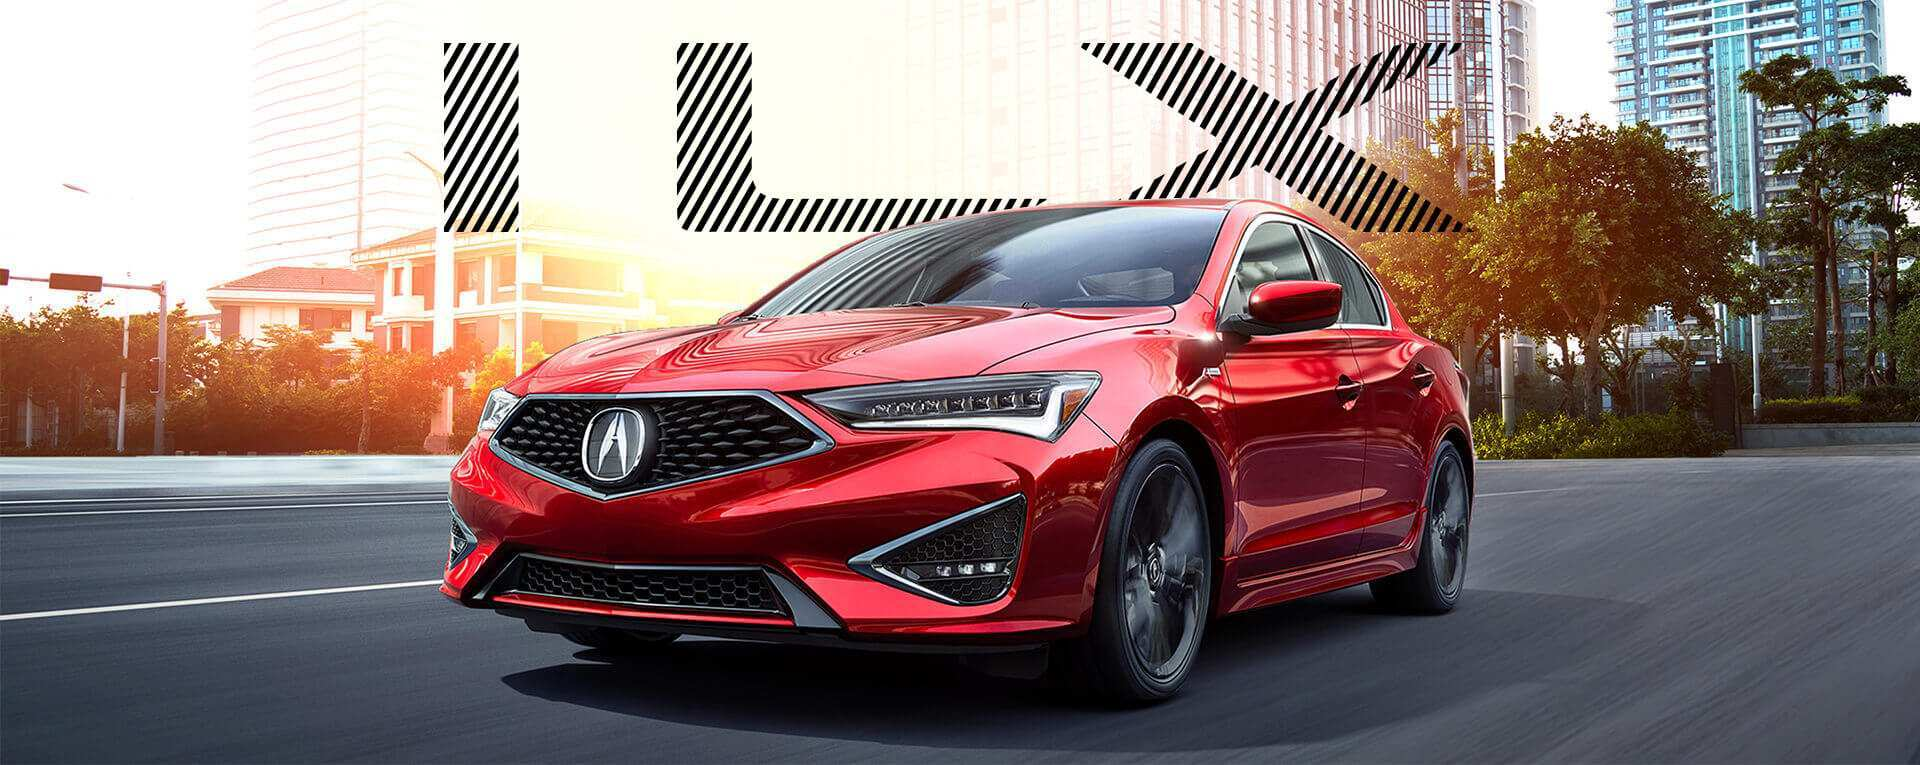 22 The 2019 Acura Pictures New Review